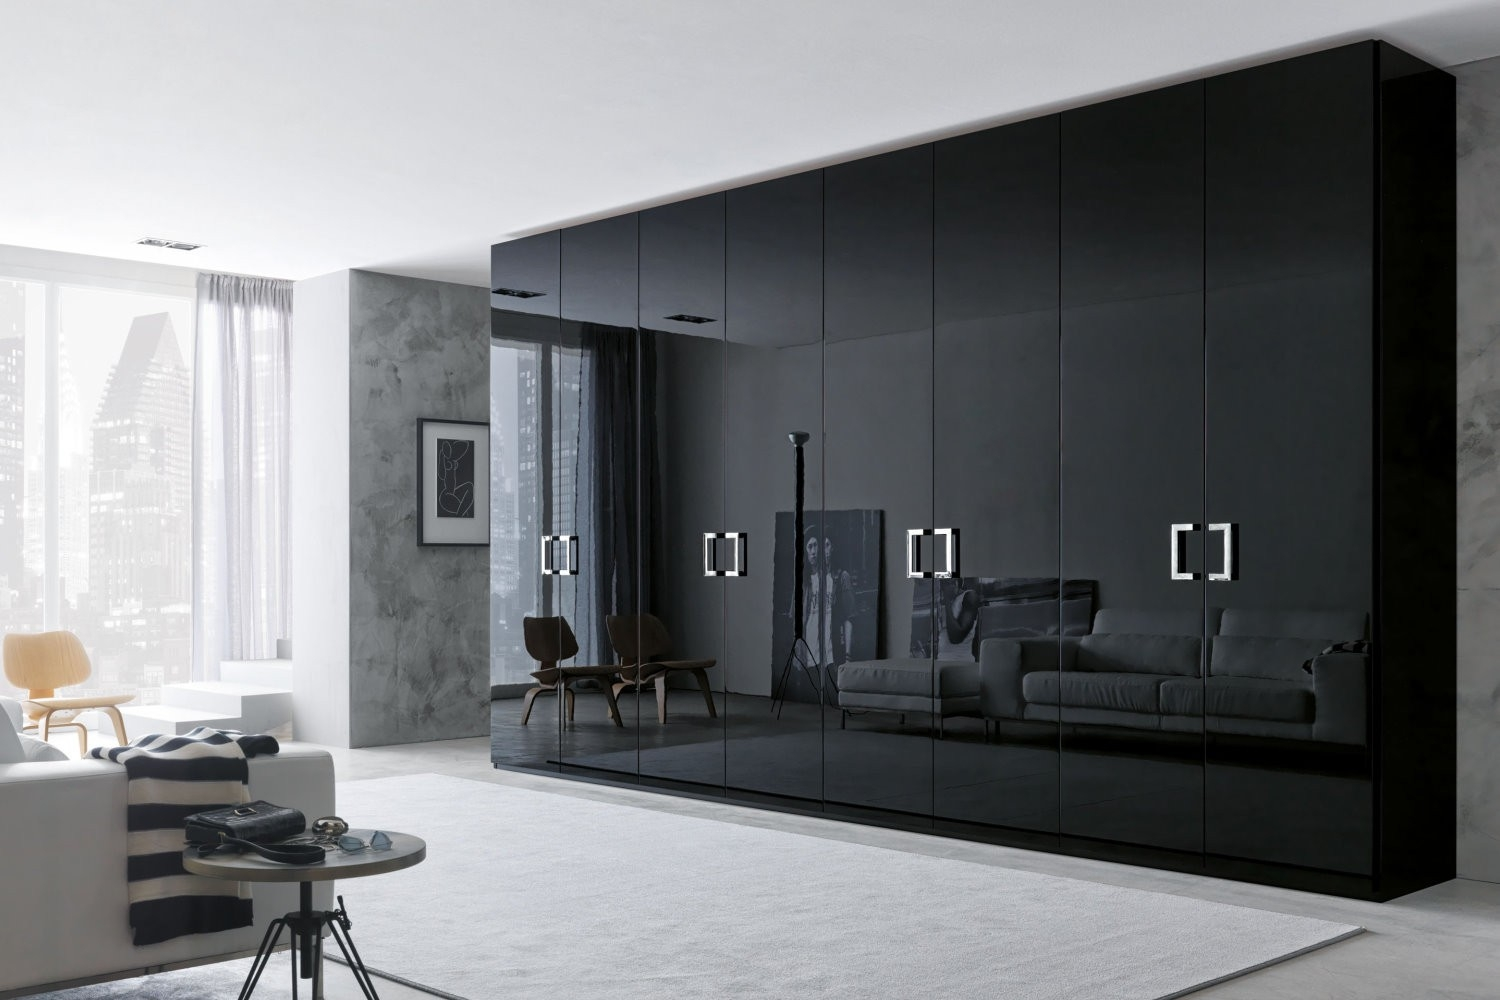 35 Modern Wardrobe Furniture Designs Wardrobe Design Gray Inside Dark Wardrobes (Image 1 of 15)